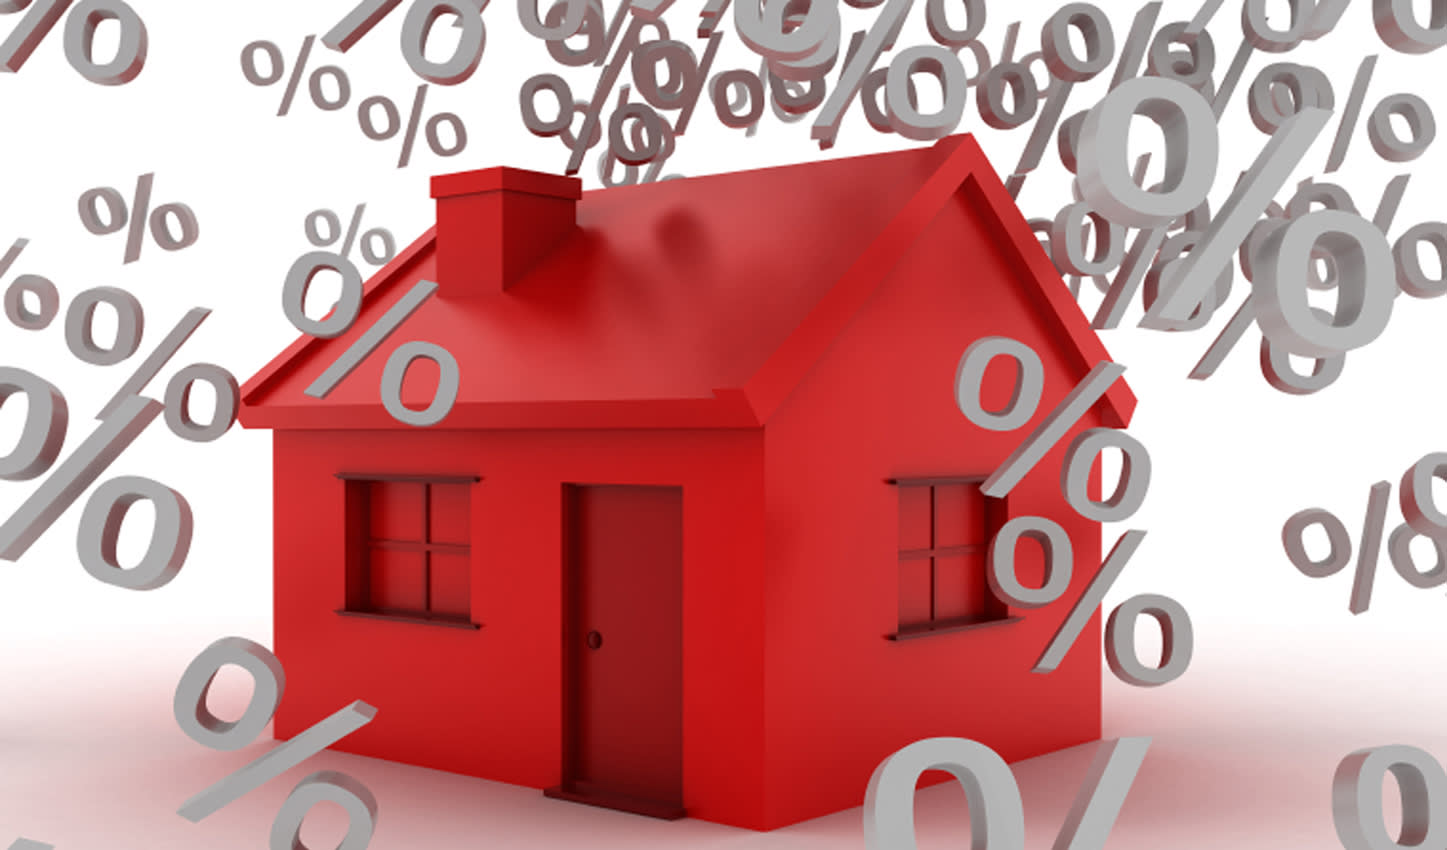 Most landlords lock in to fixed rates